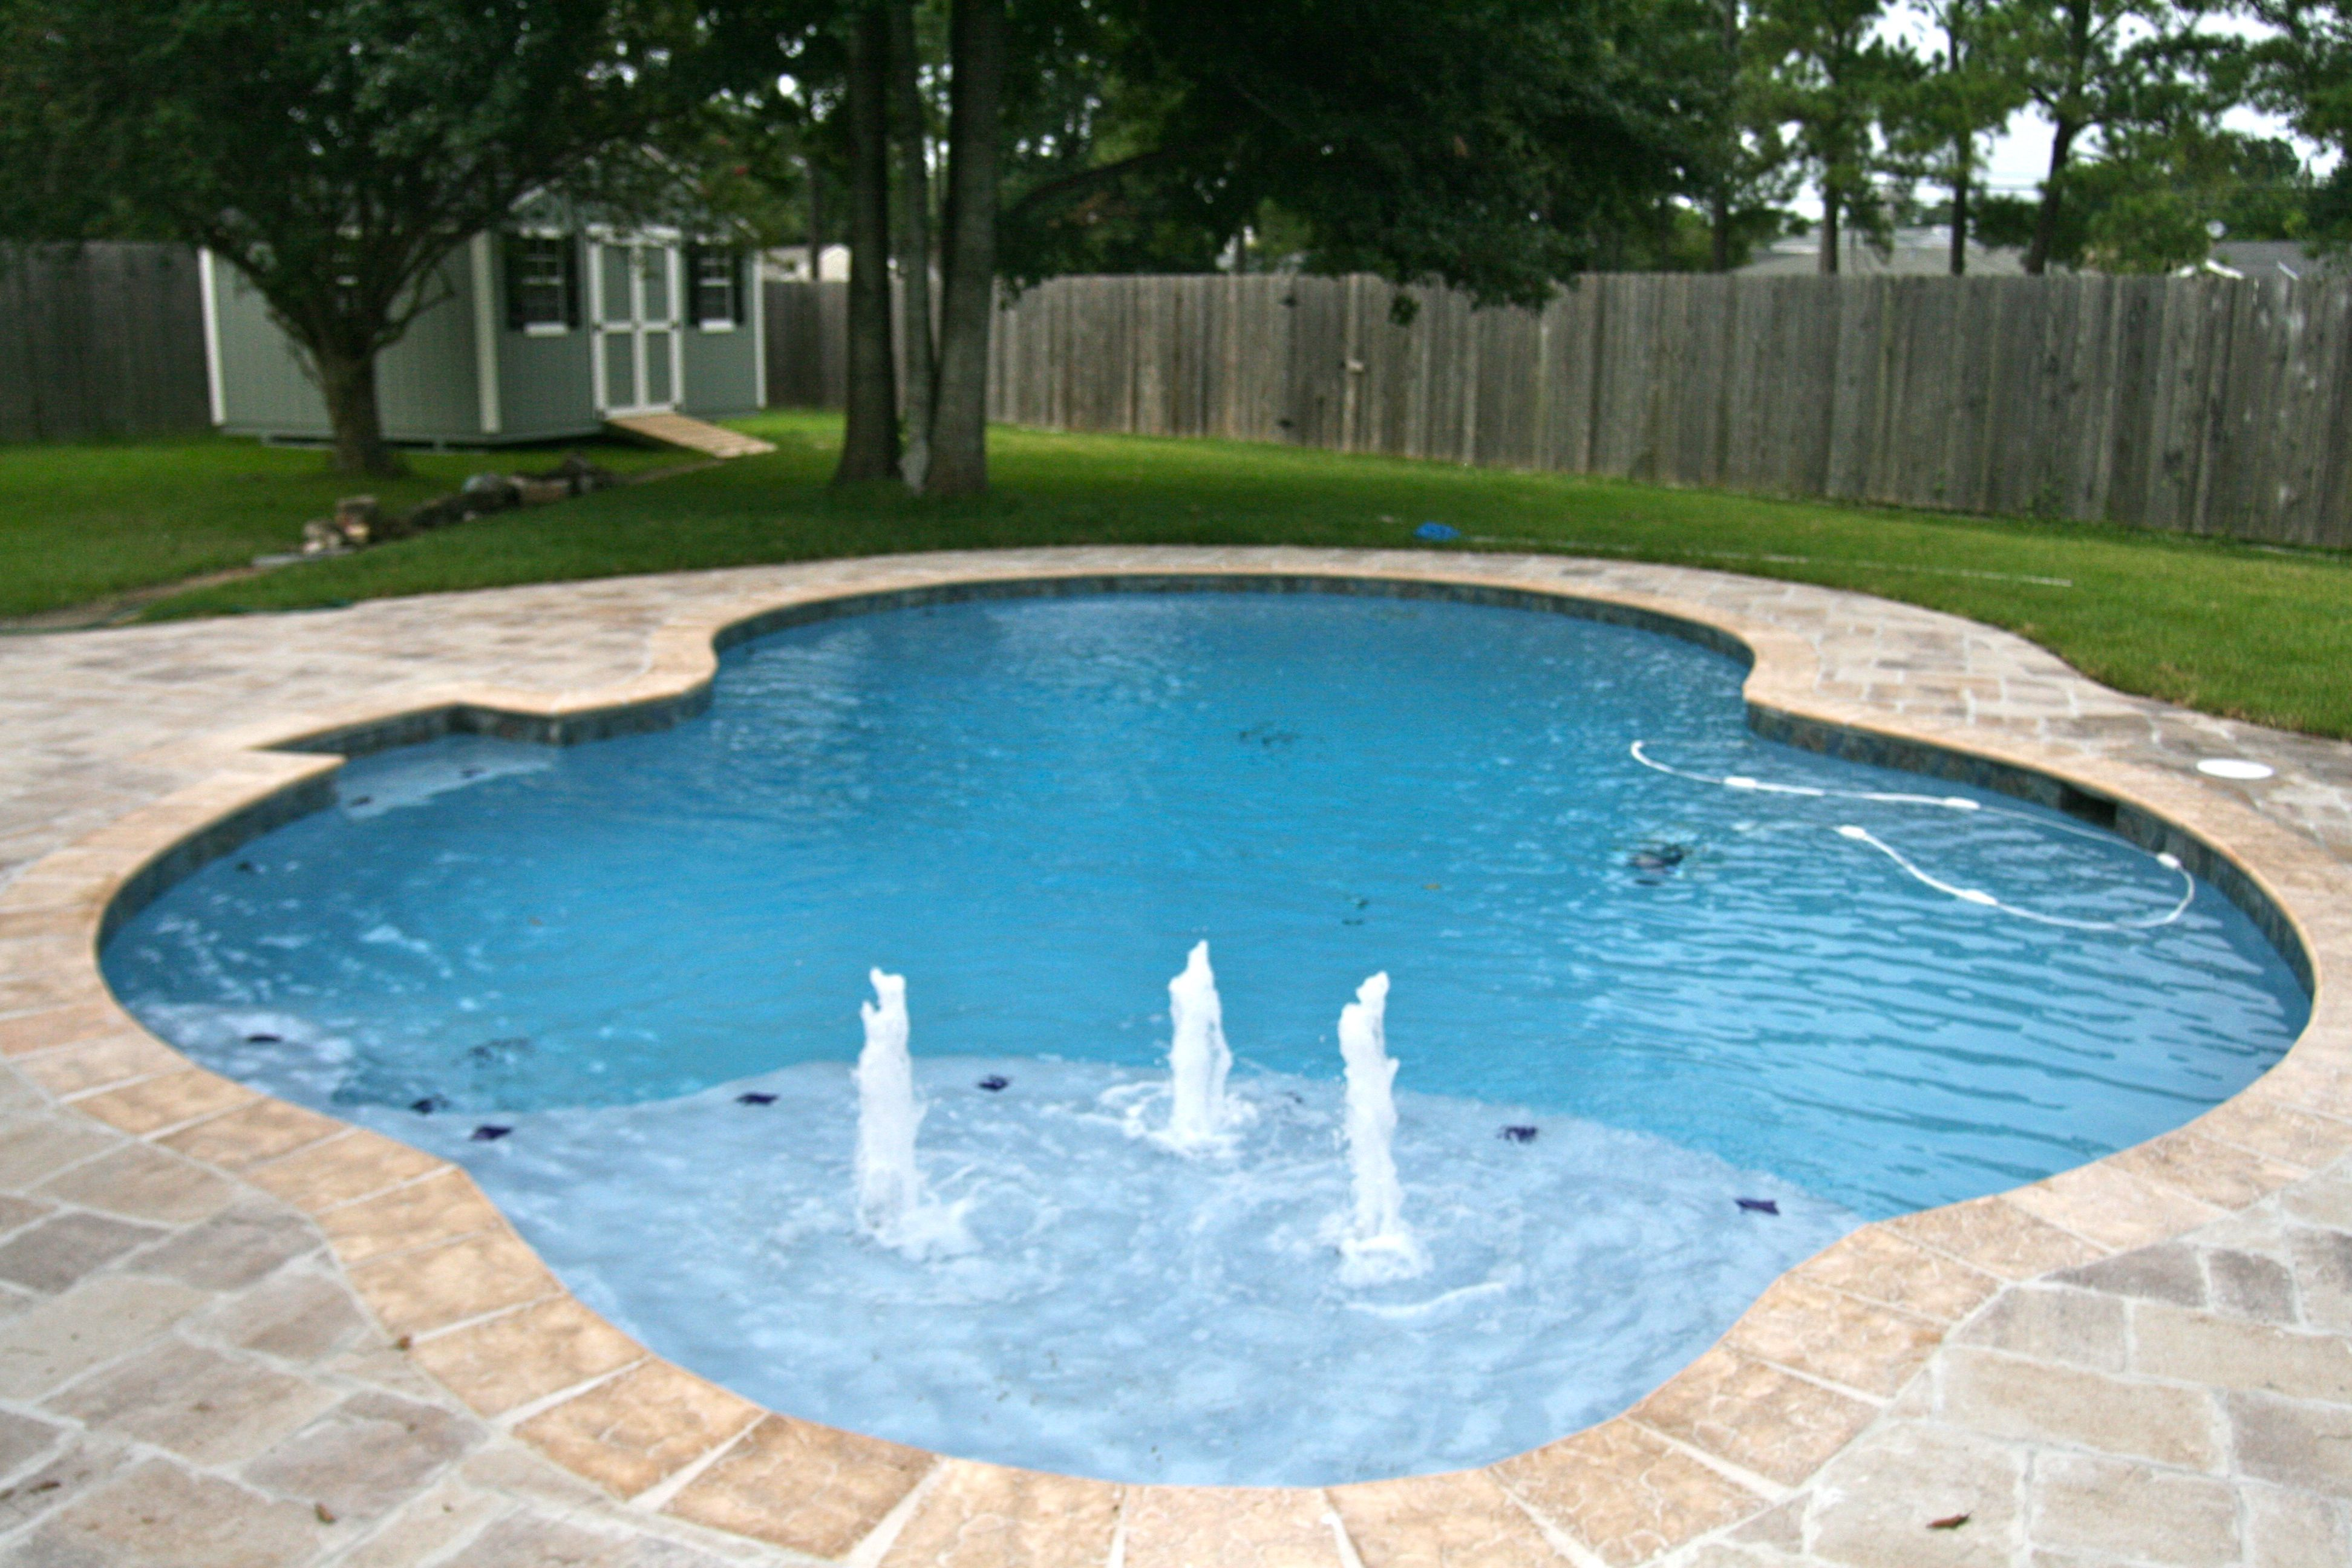 Pin By Cathy Presar On Pool Party Amazing Swimming Pools